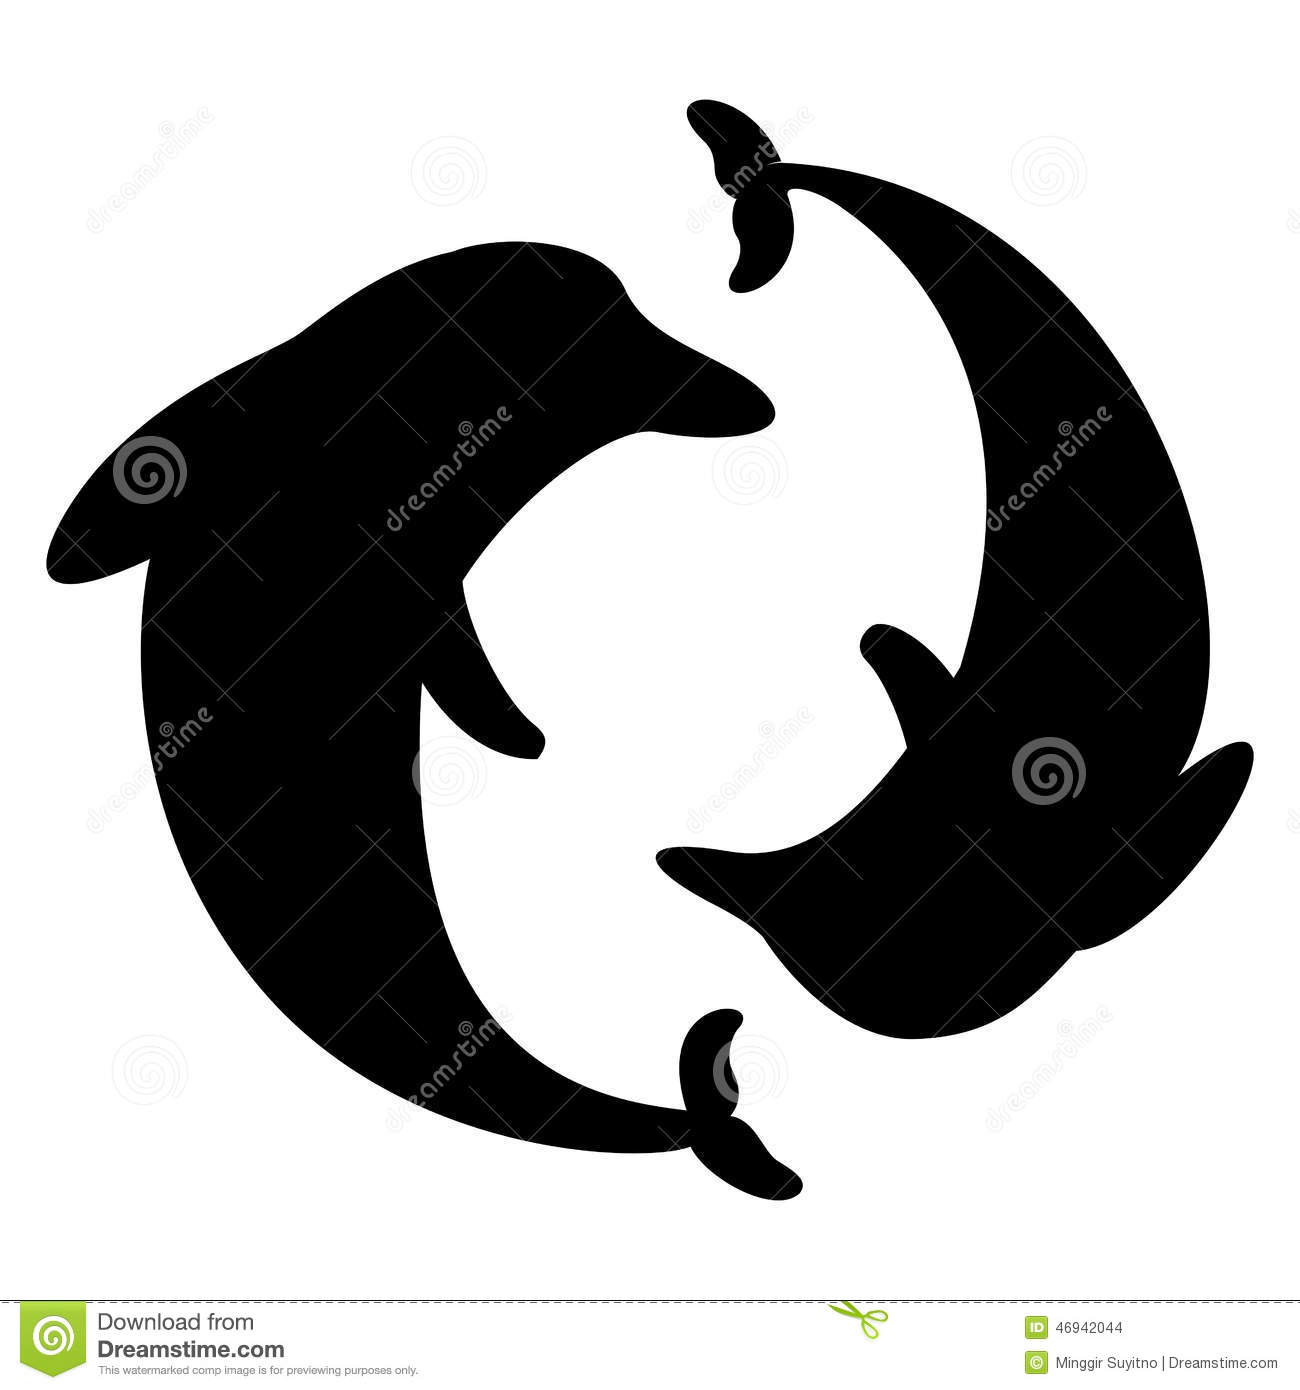 Dolphin Arranged In A Circle Silhouette Stock Vector - Image: 46942044